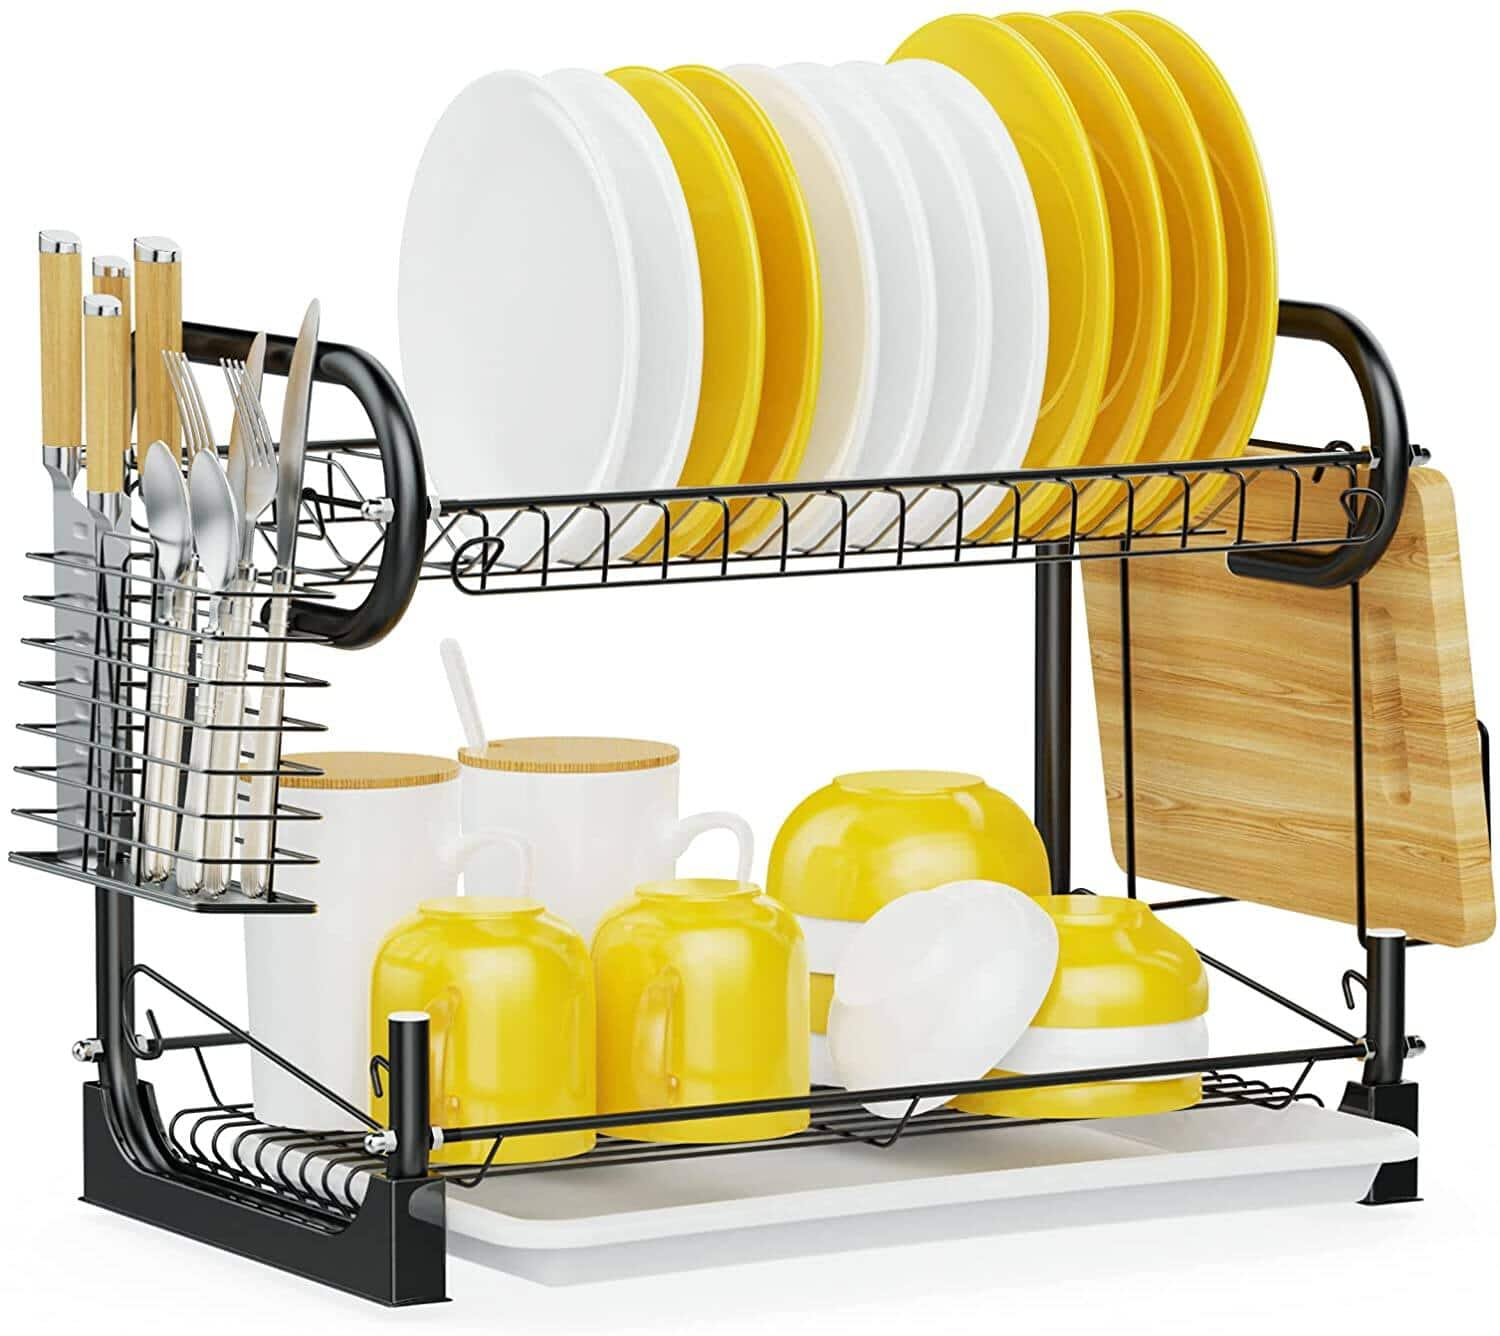 iSPECLE 2 Tier Dish Rack with Utensil Holder $18.89